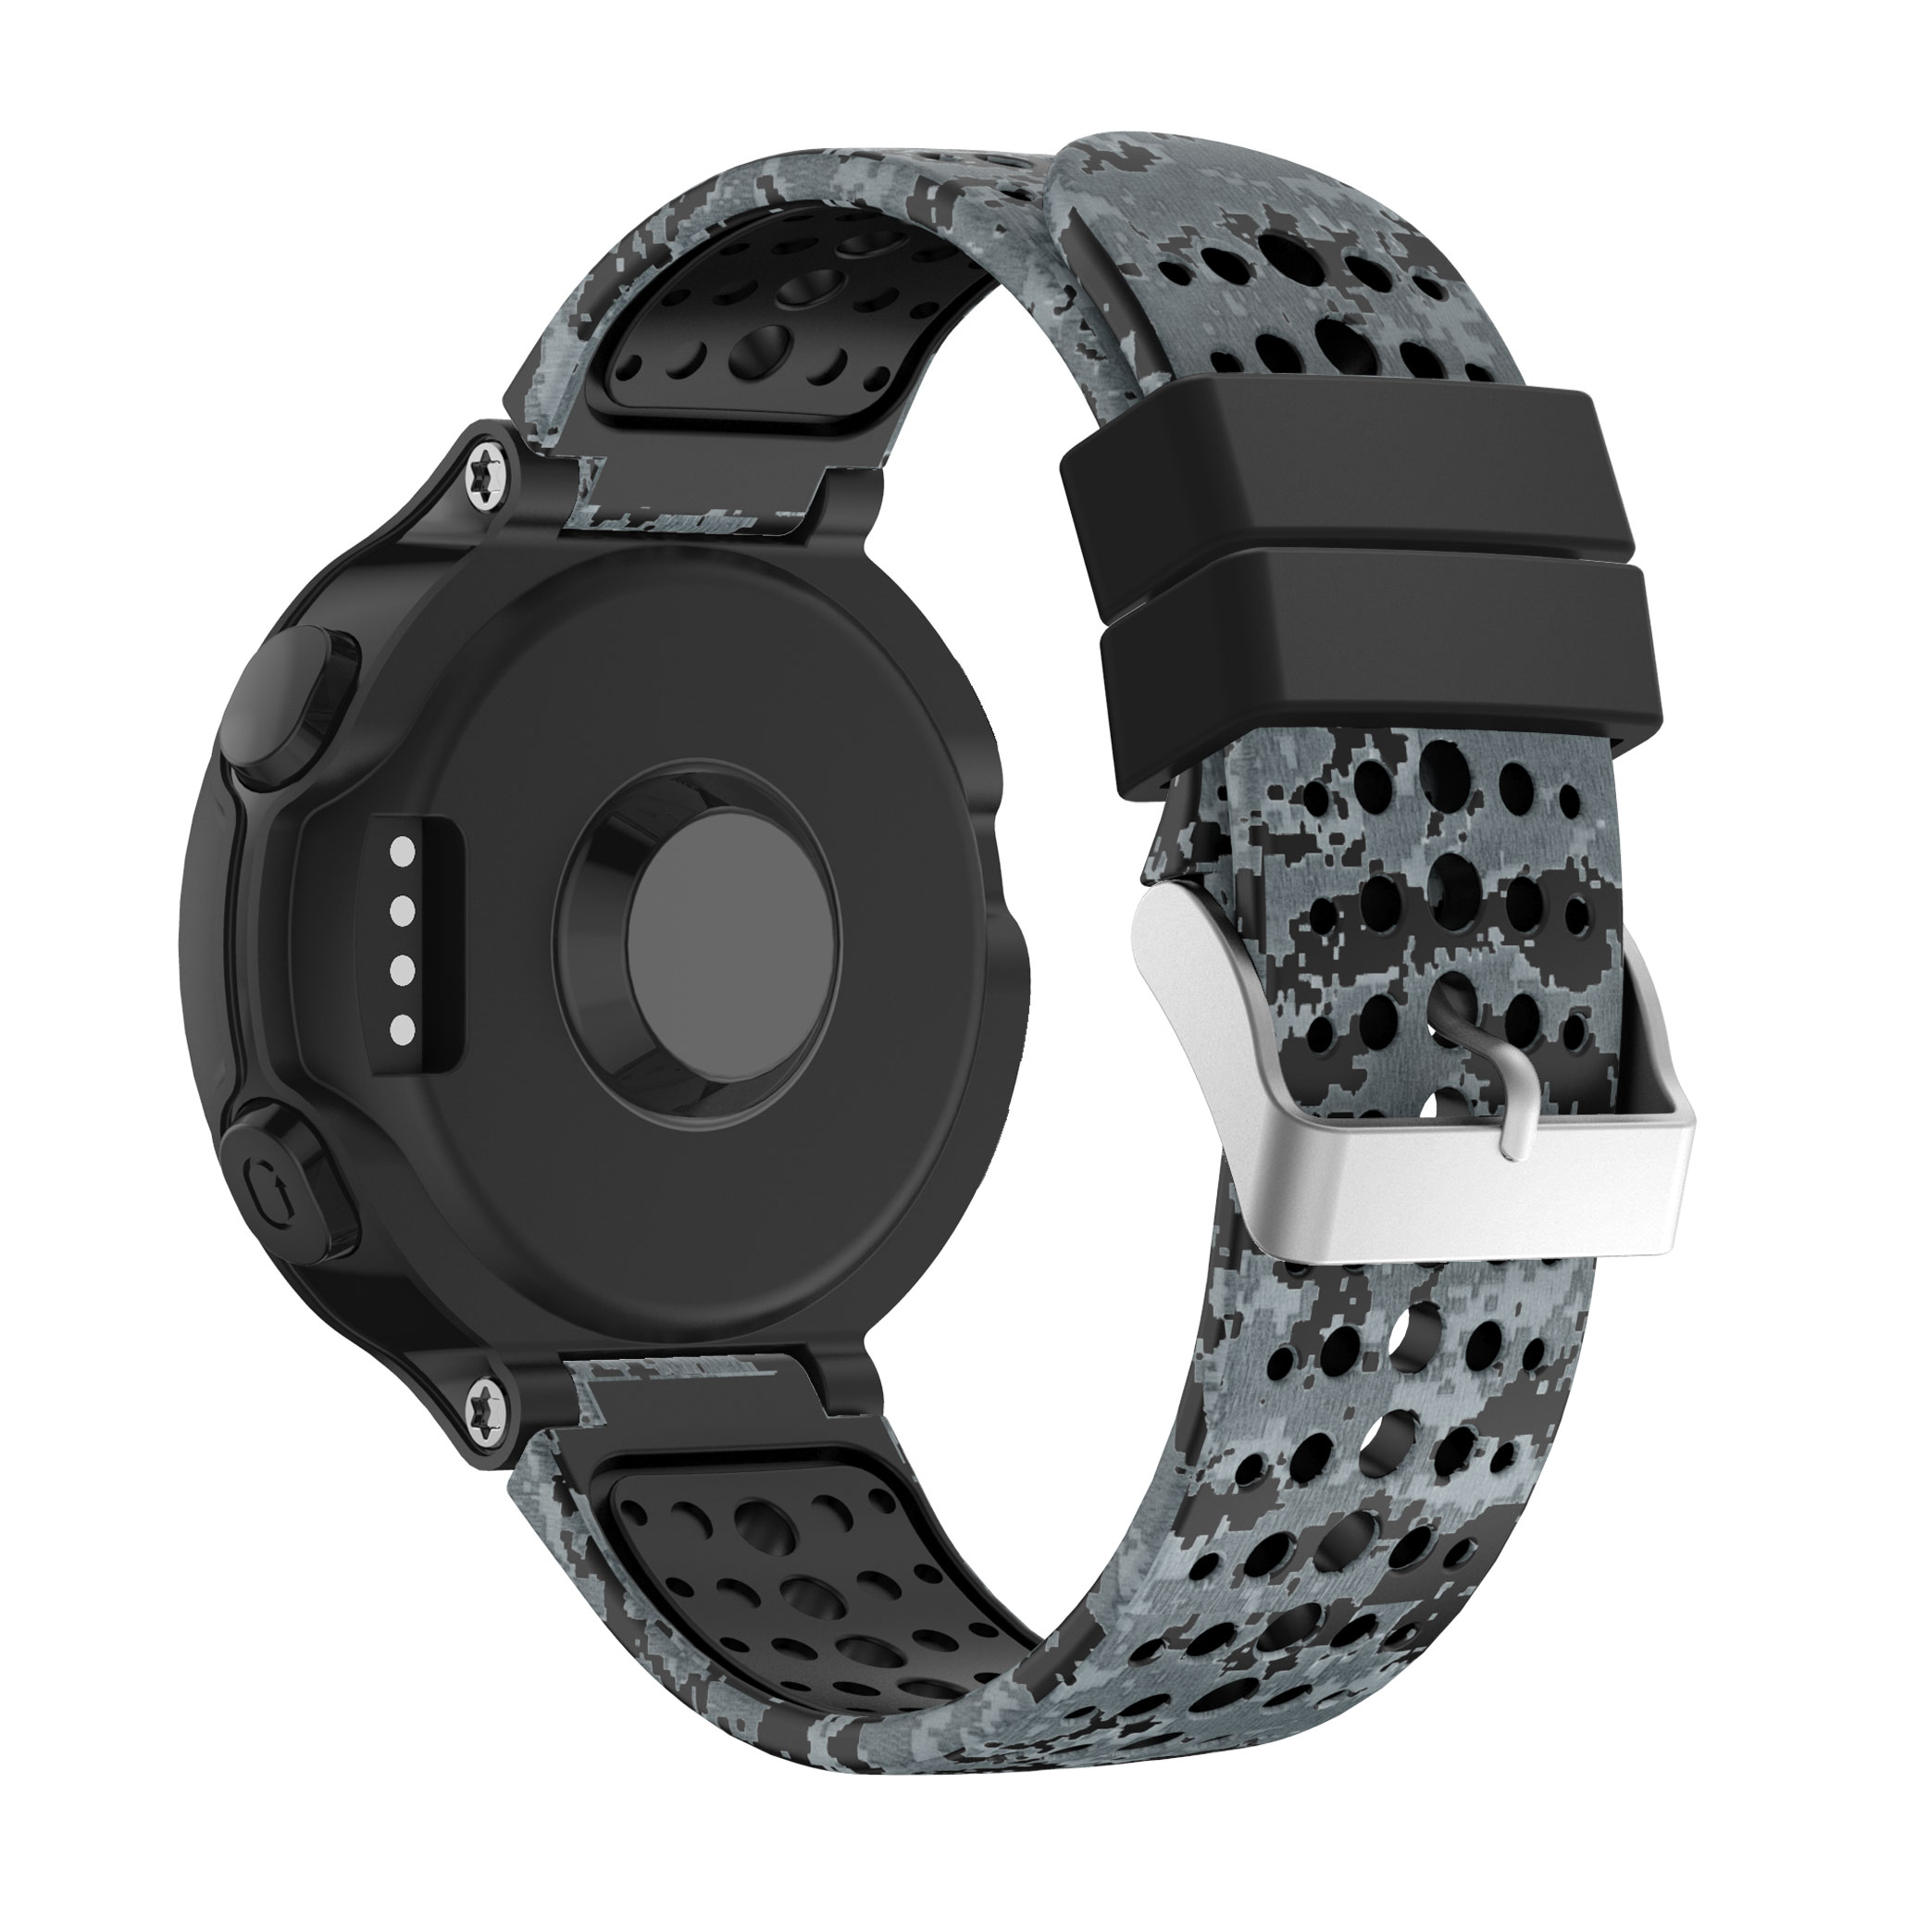 Image 2 - Yayuu Printed Silicone Watch Band For Garmin Forerunner 220/230/235/620/630/735XT Bracelet Replacement Wrist Strap   Buckle band-in Smart Accessories from Consumer Electronics